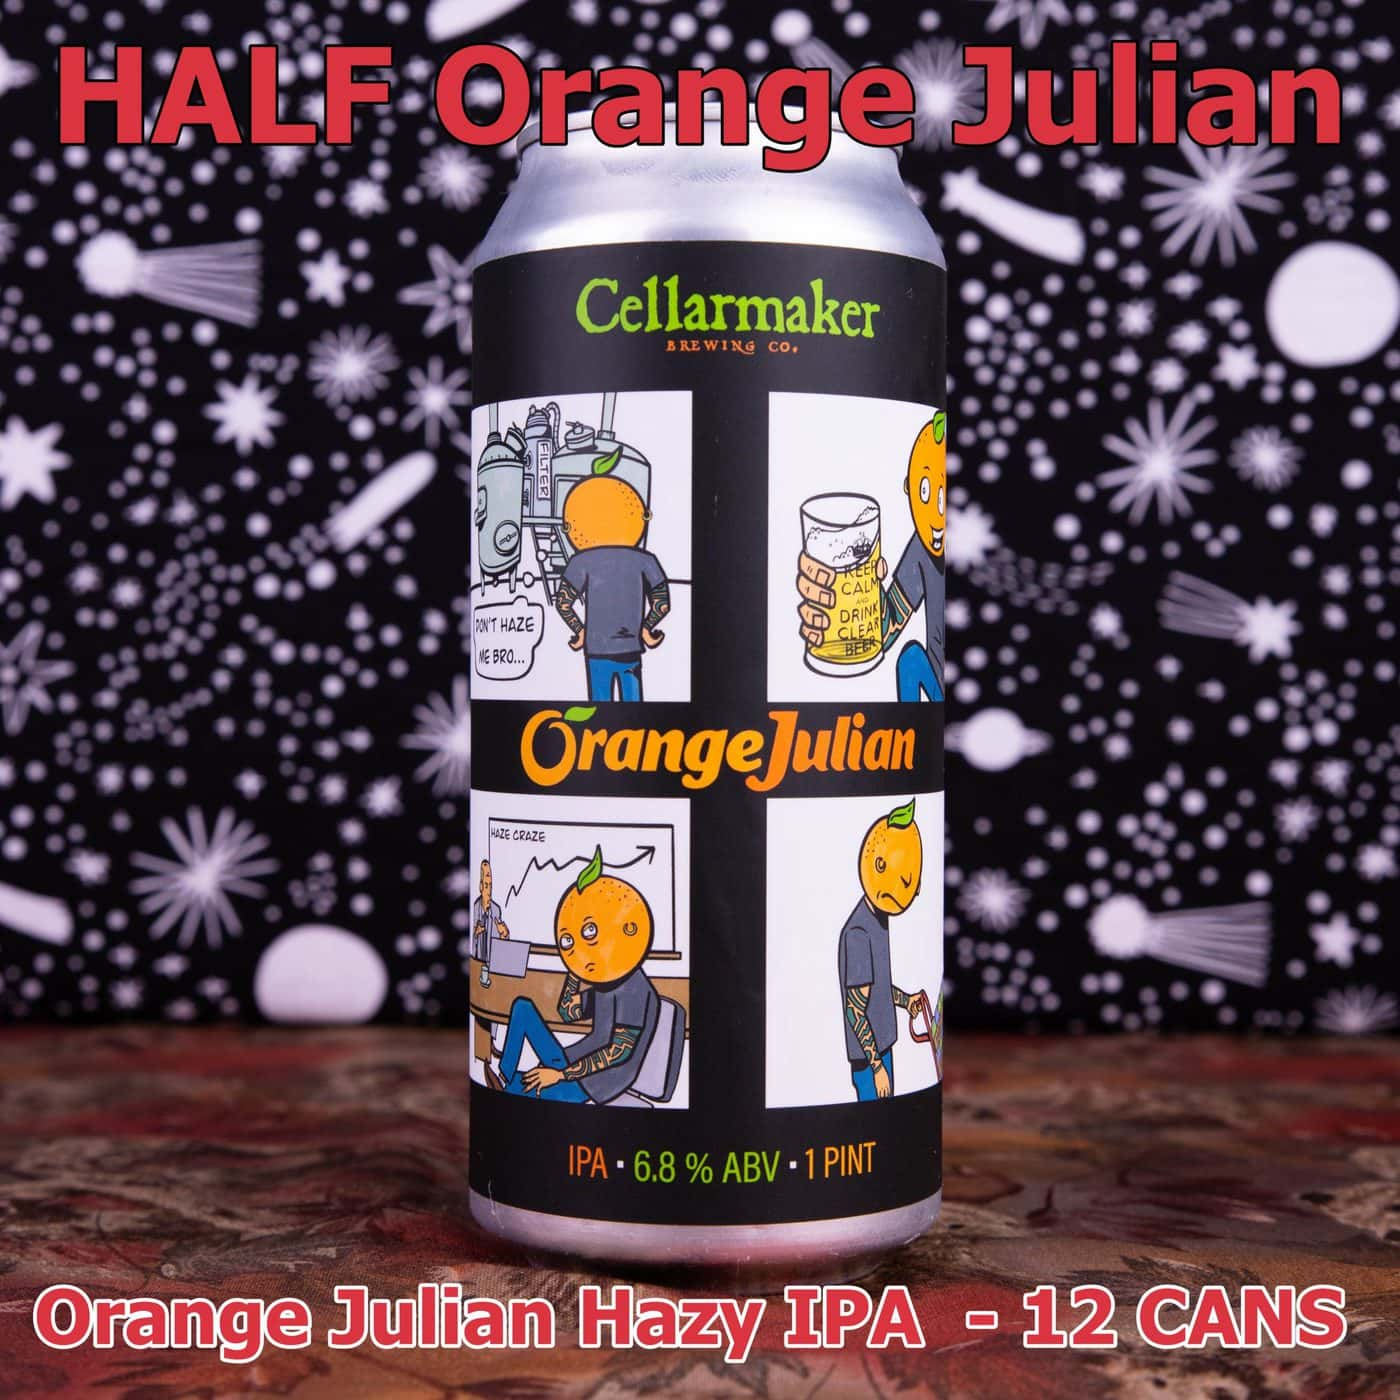 HALF CASE 12 CANS Orange Julian IPA ~ Shipping Out For Next Day Delivery On Tuesday 1/19*